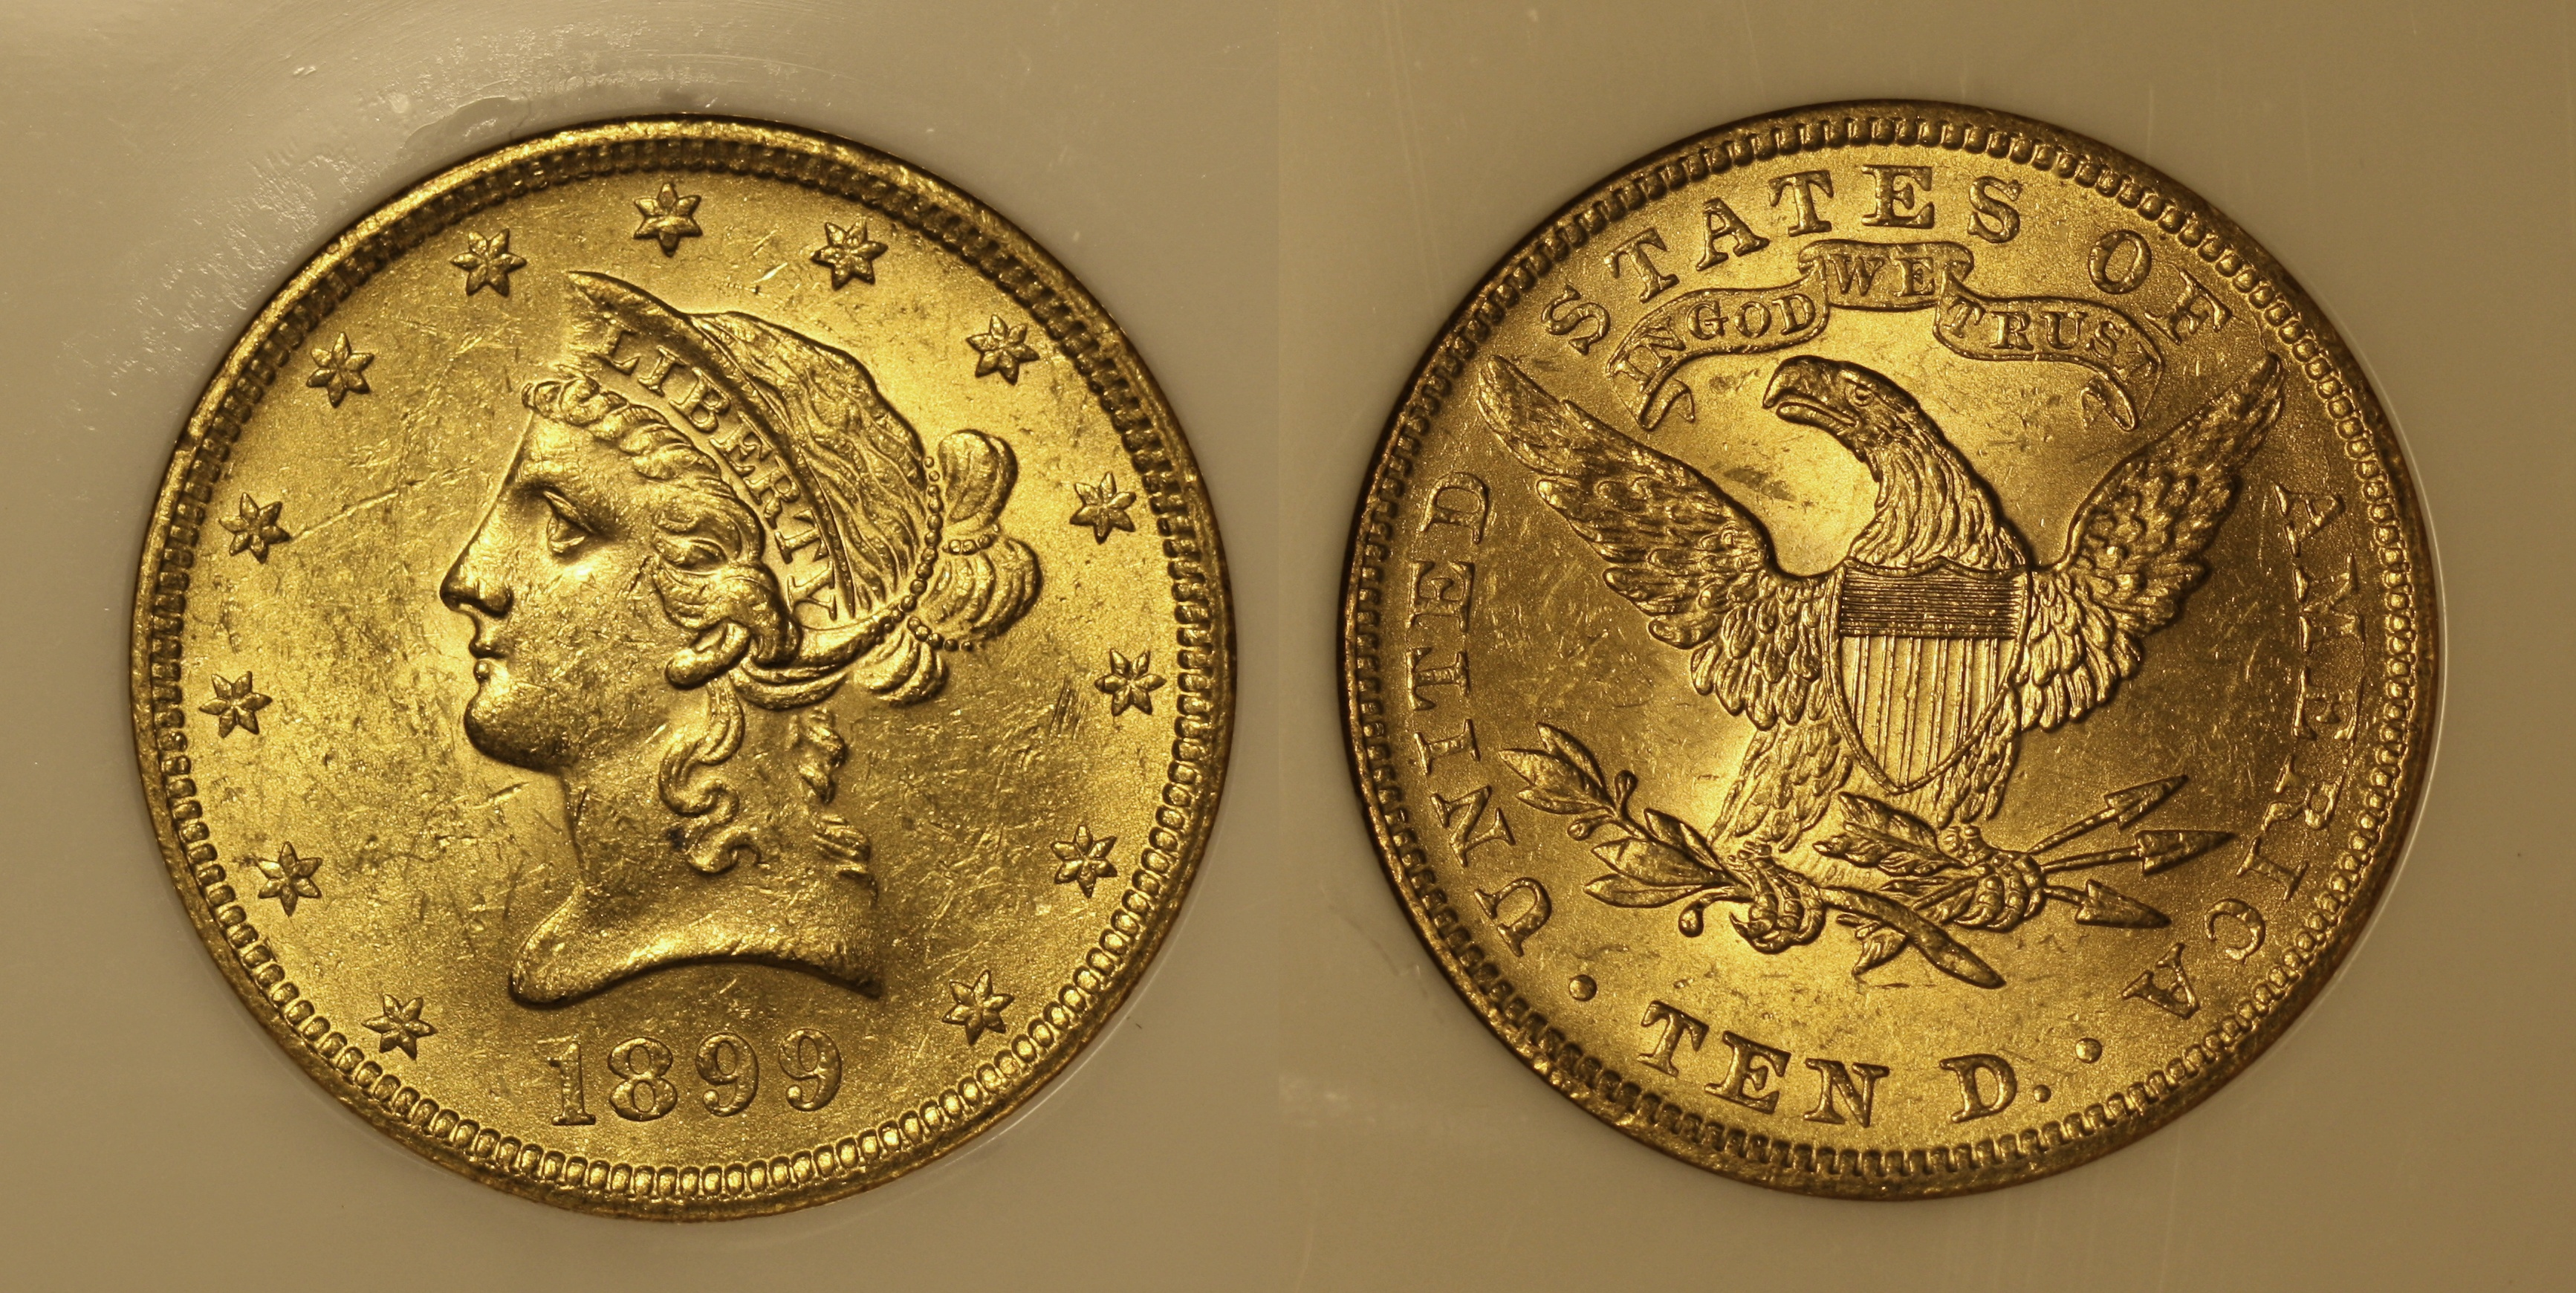 1899 Gold Liberty Head $10.00 Eagle NGC MS-62 camera